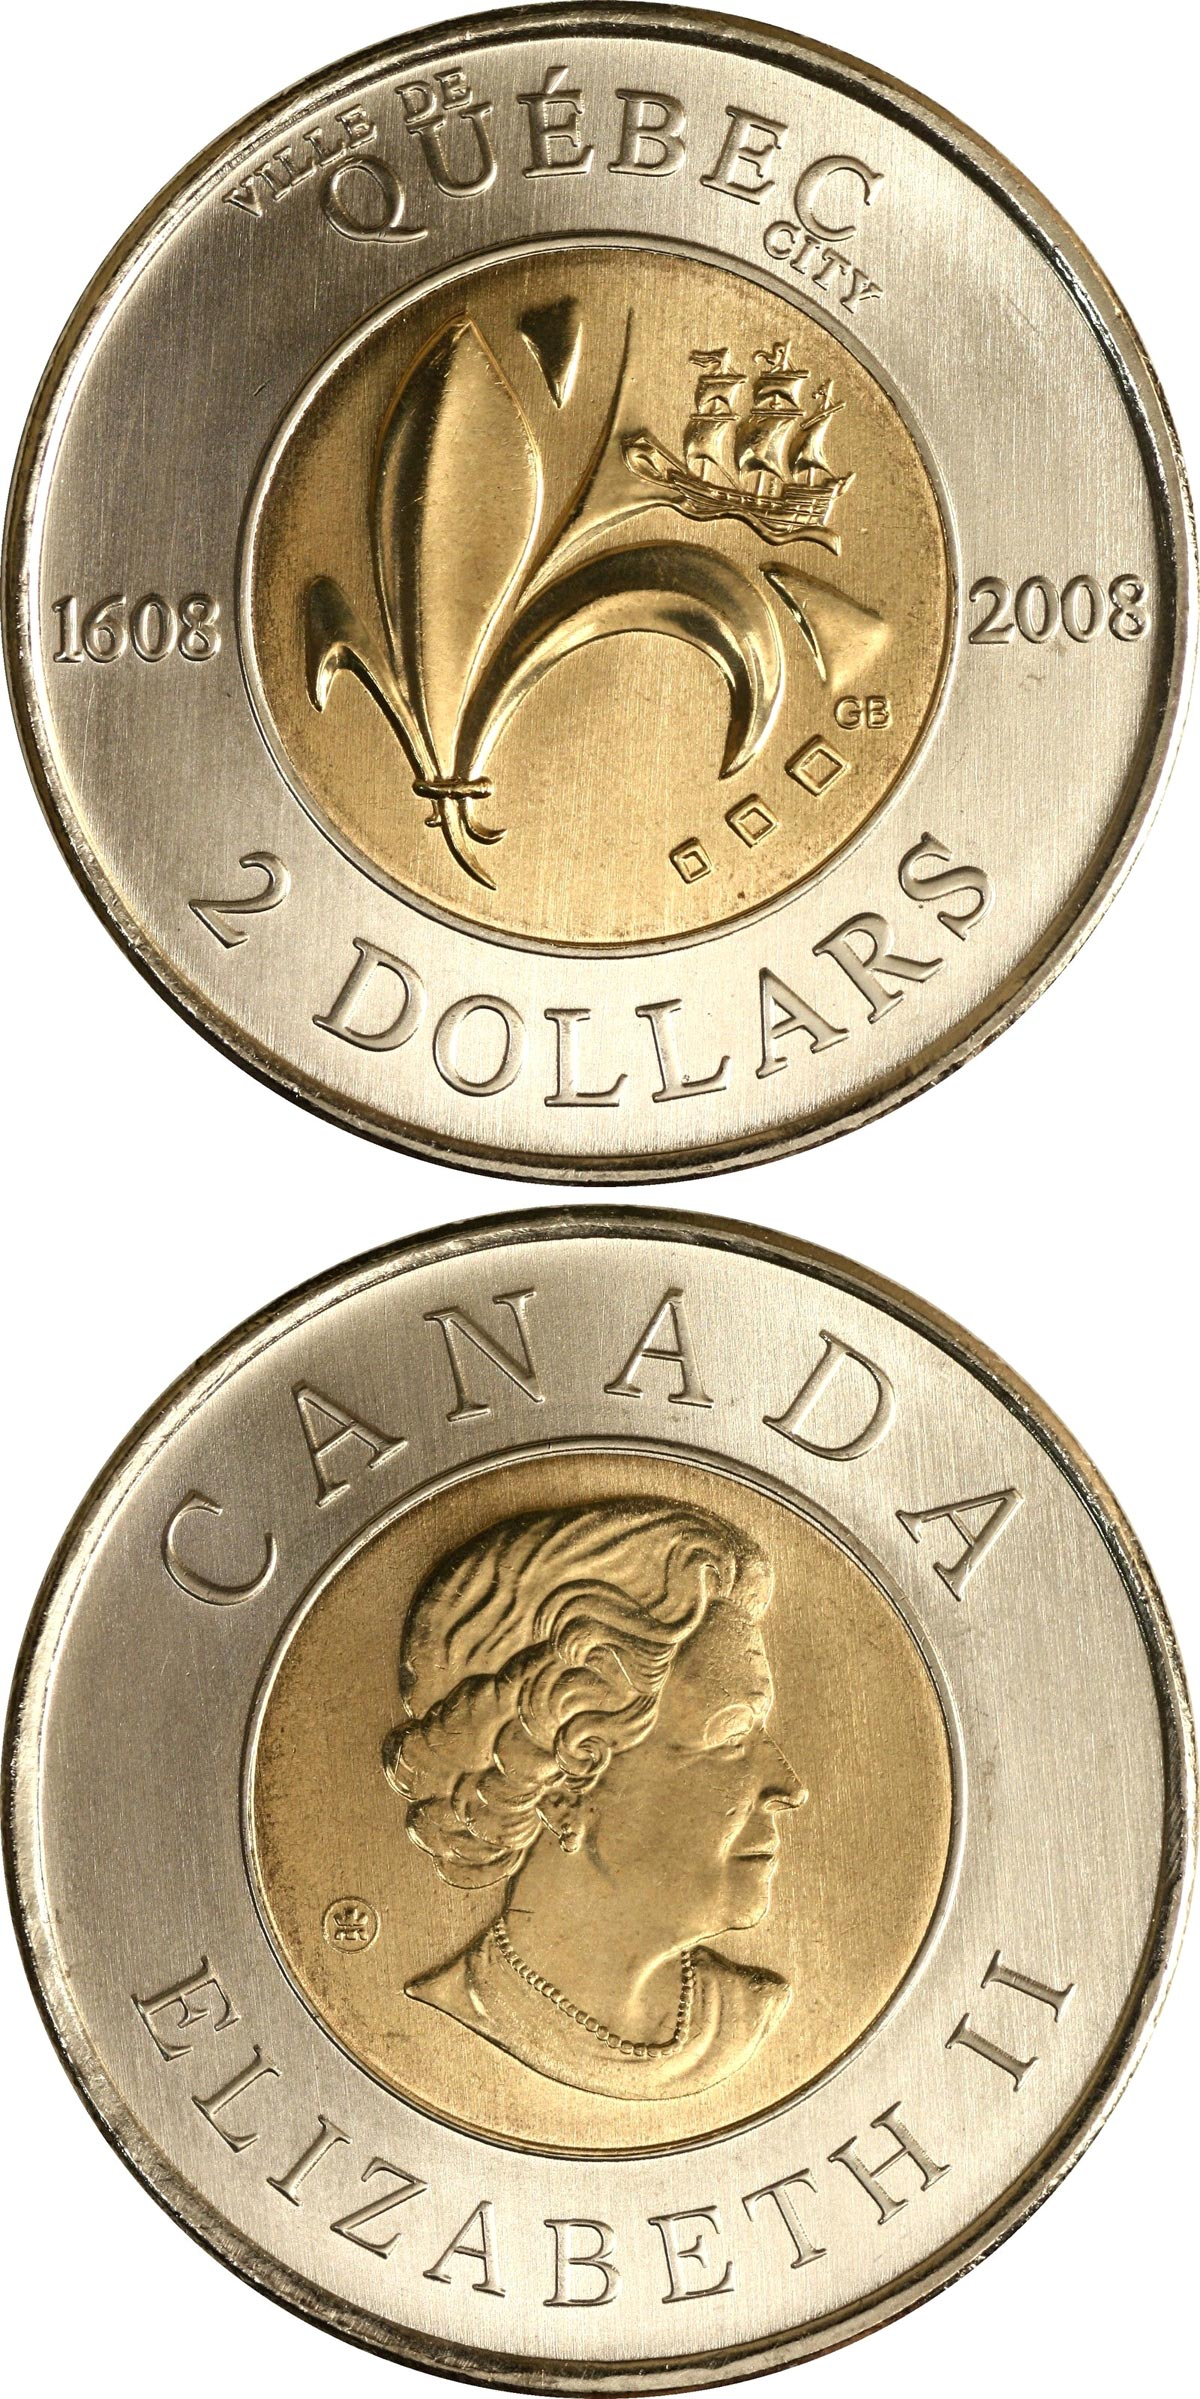 1999 Nunavut Province Toonie 2$ Canada dollar coin +Combined shipping